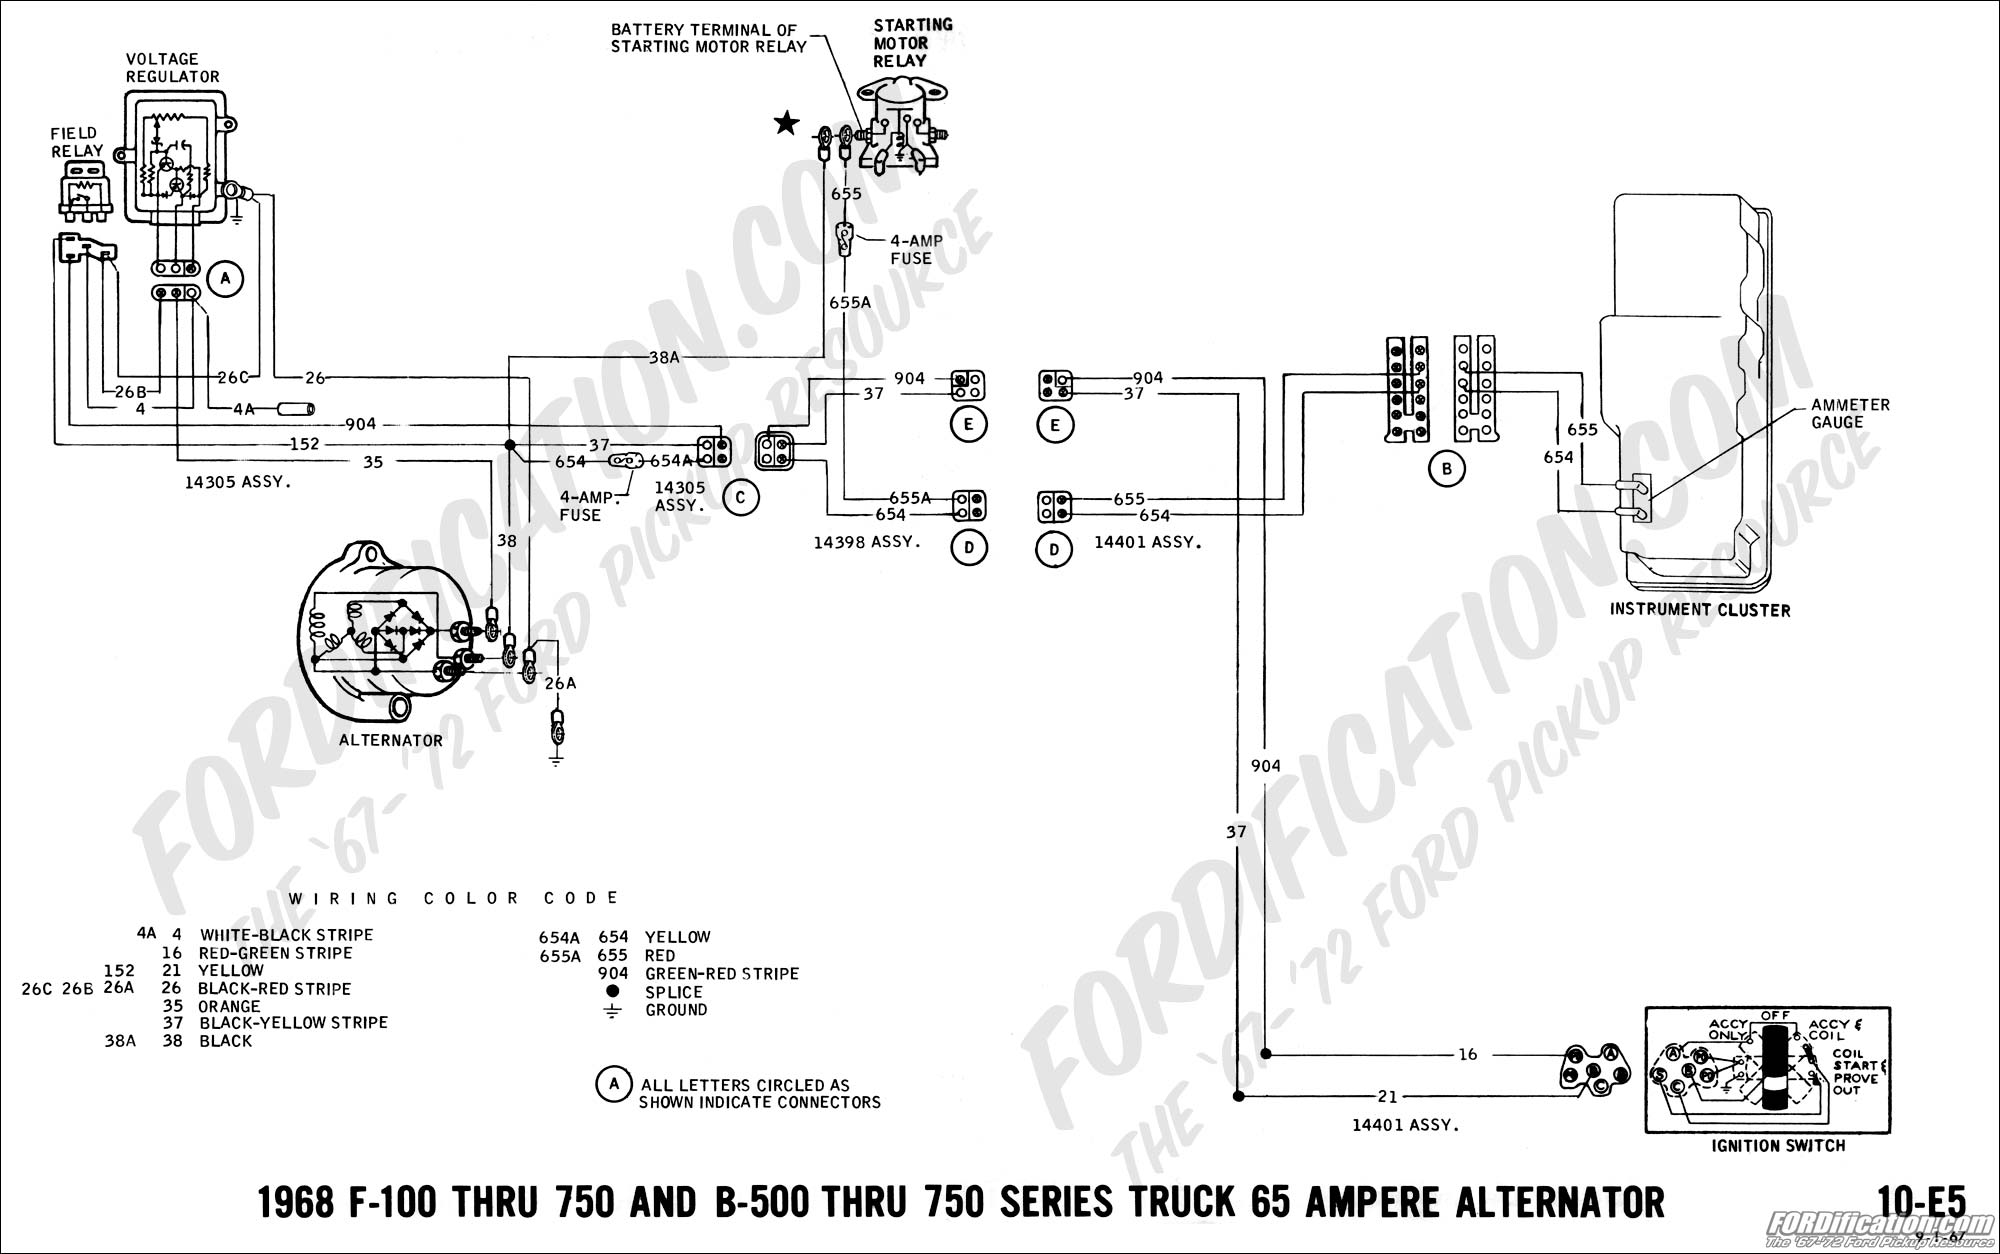 68 07 1968 ford f100 wiring diagram 1965 ford f100 alternator wiring 1965 ford mustang wiring diagrams at panicattacktreatment.co